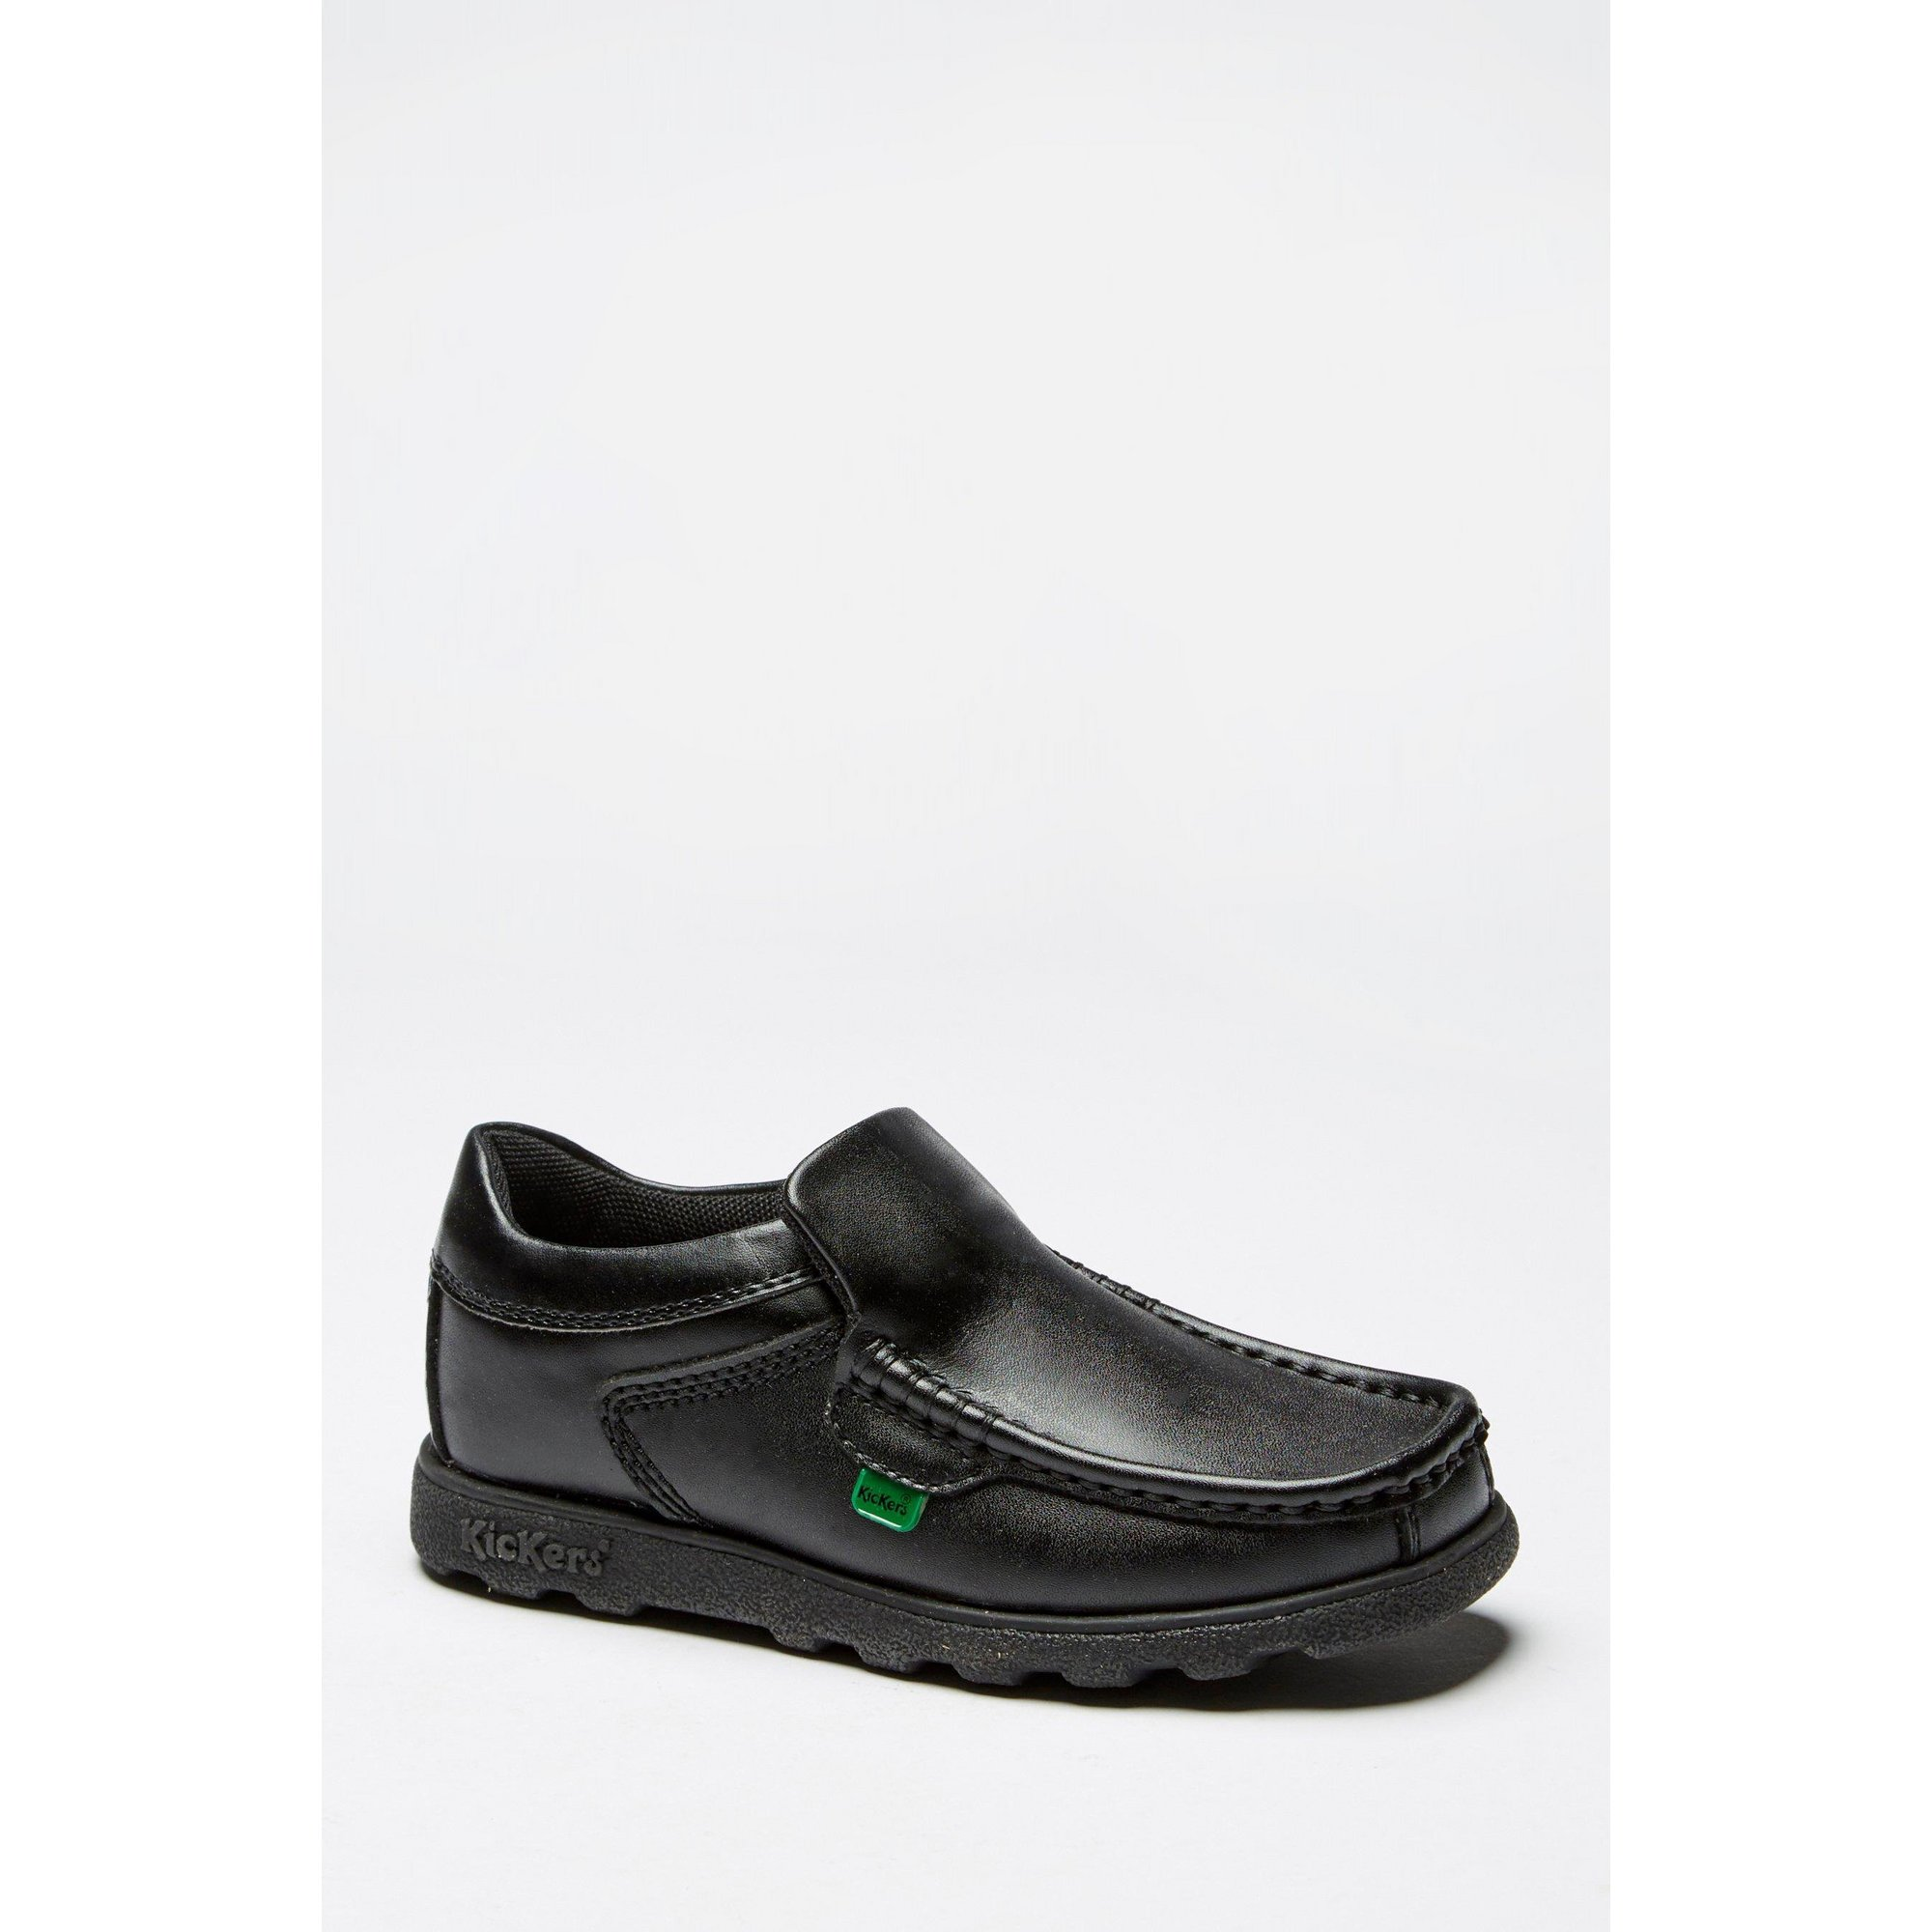 Image of Boys Kickers Fragma Slip-On Shoes